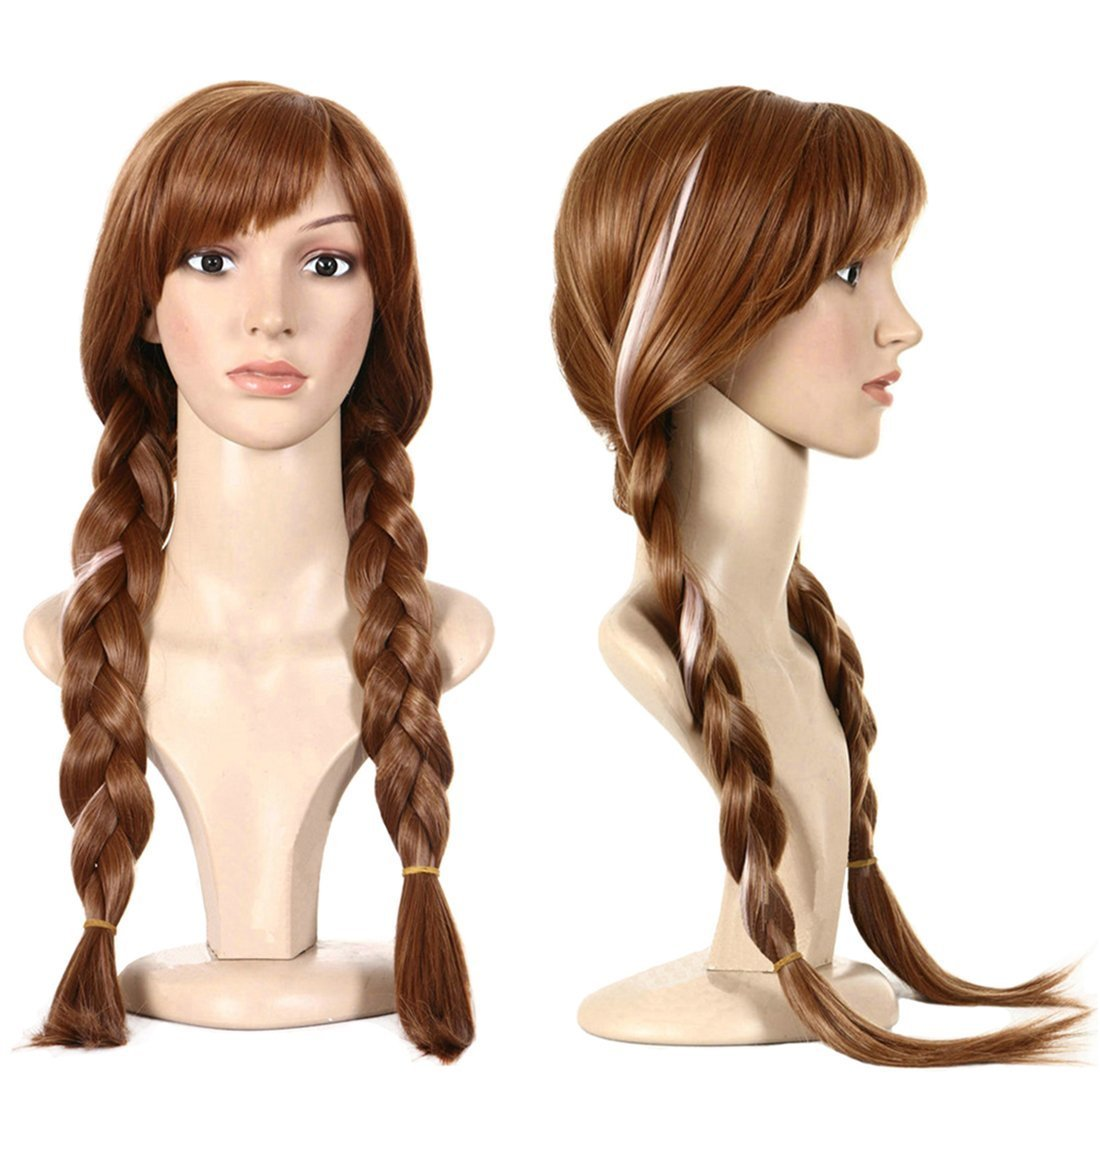 Anogol Hair Cap+Movie Braided Wig for Cosplay Wig Brown Braid Princess Wigs for Women Girls Halloween Costume (Brown,1-Pack) by ANOGOL